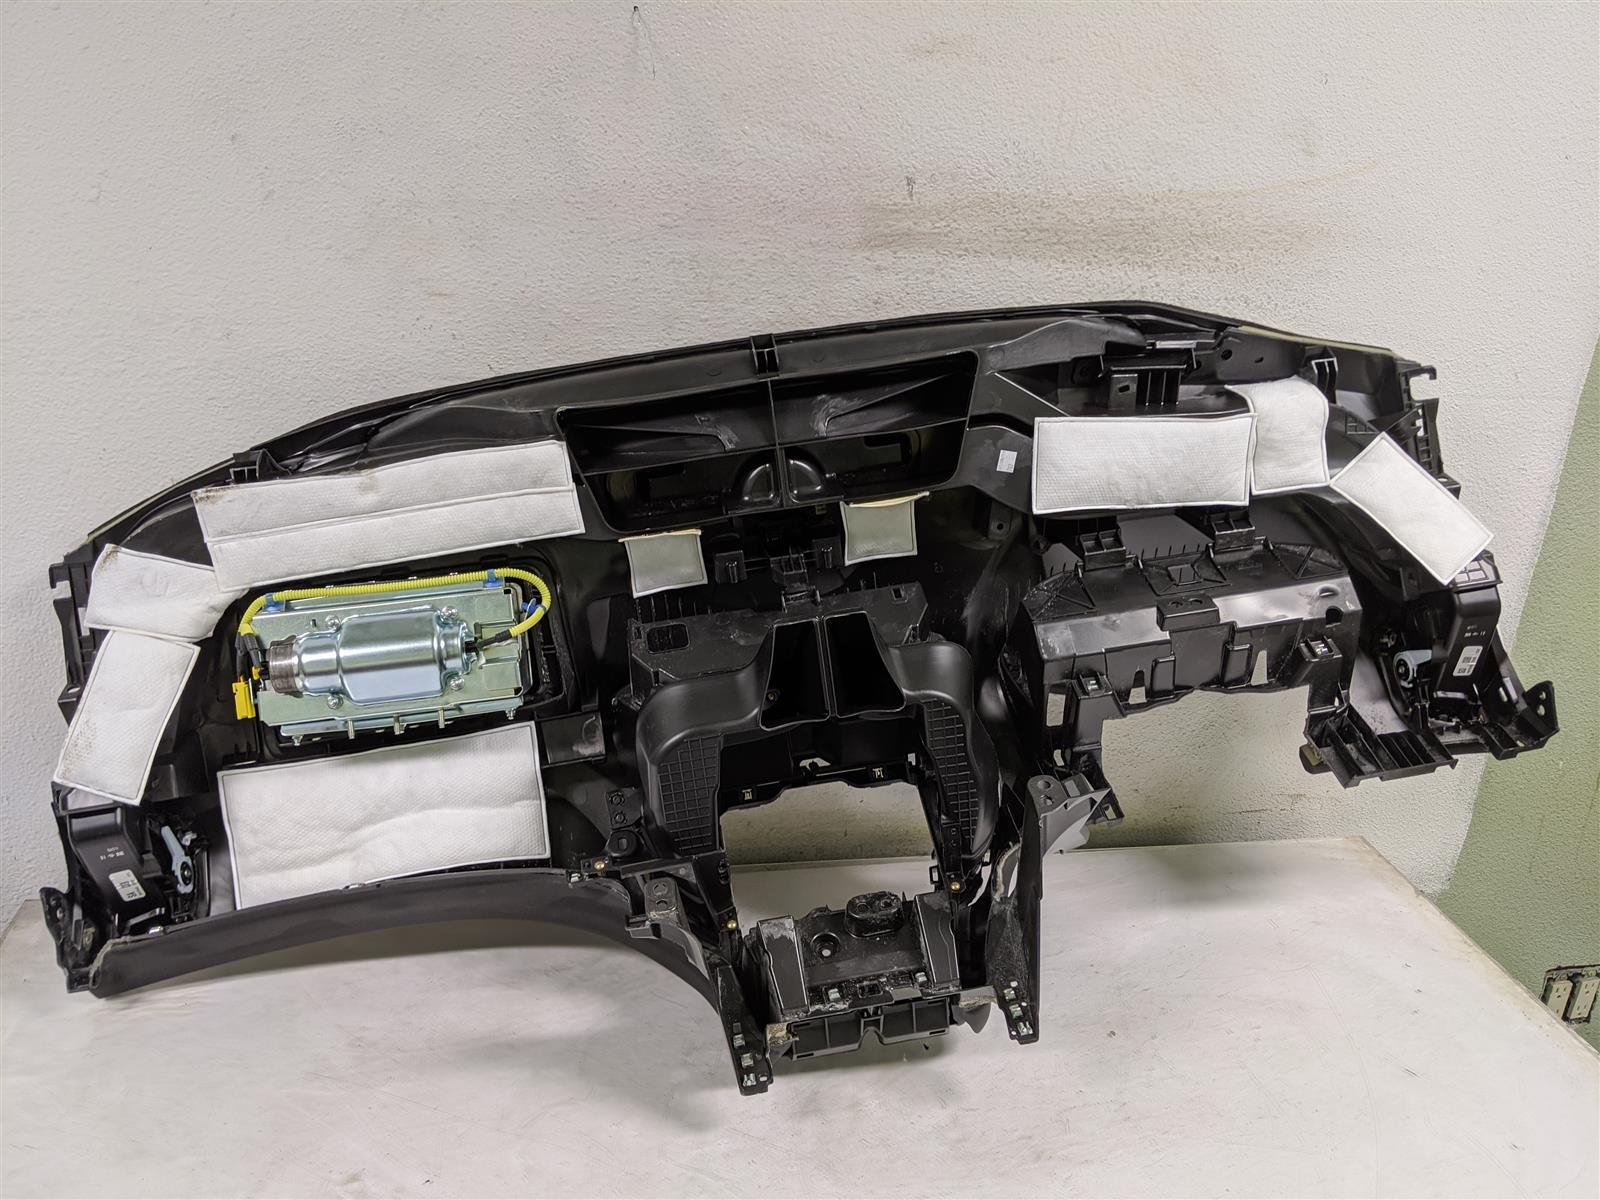 2017 Acura TLX Dashboard With Airbag Replacement